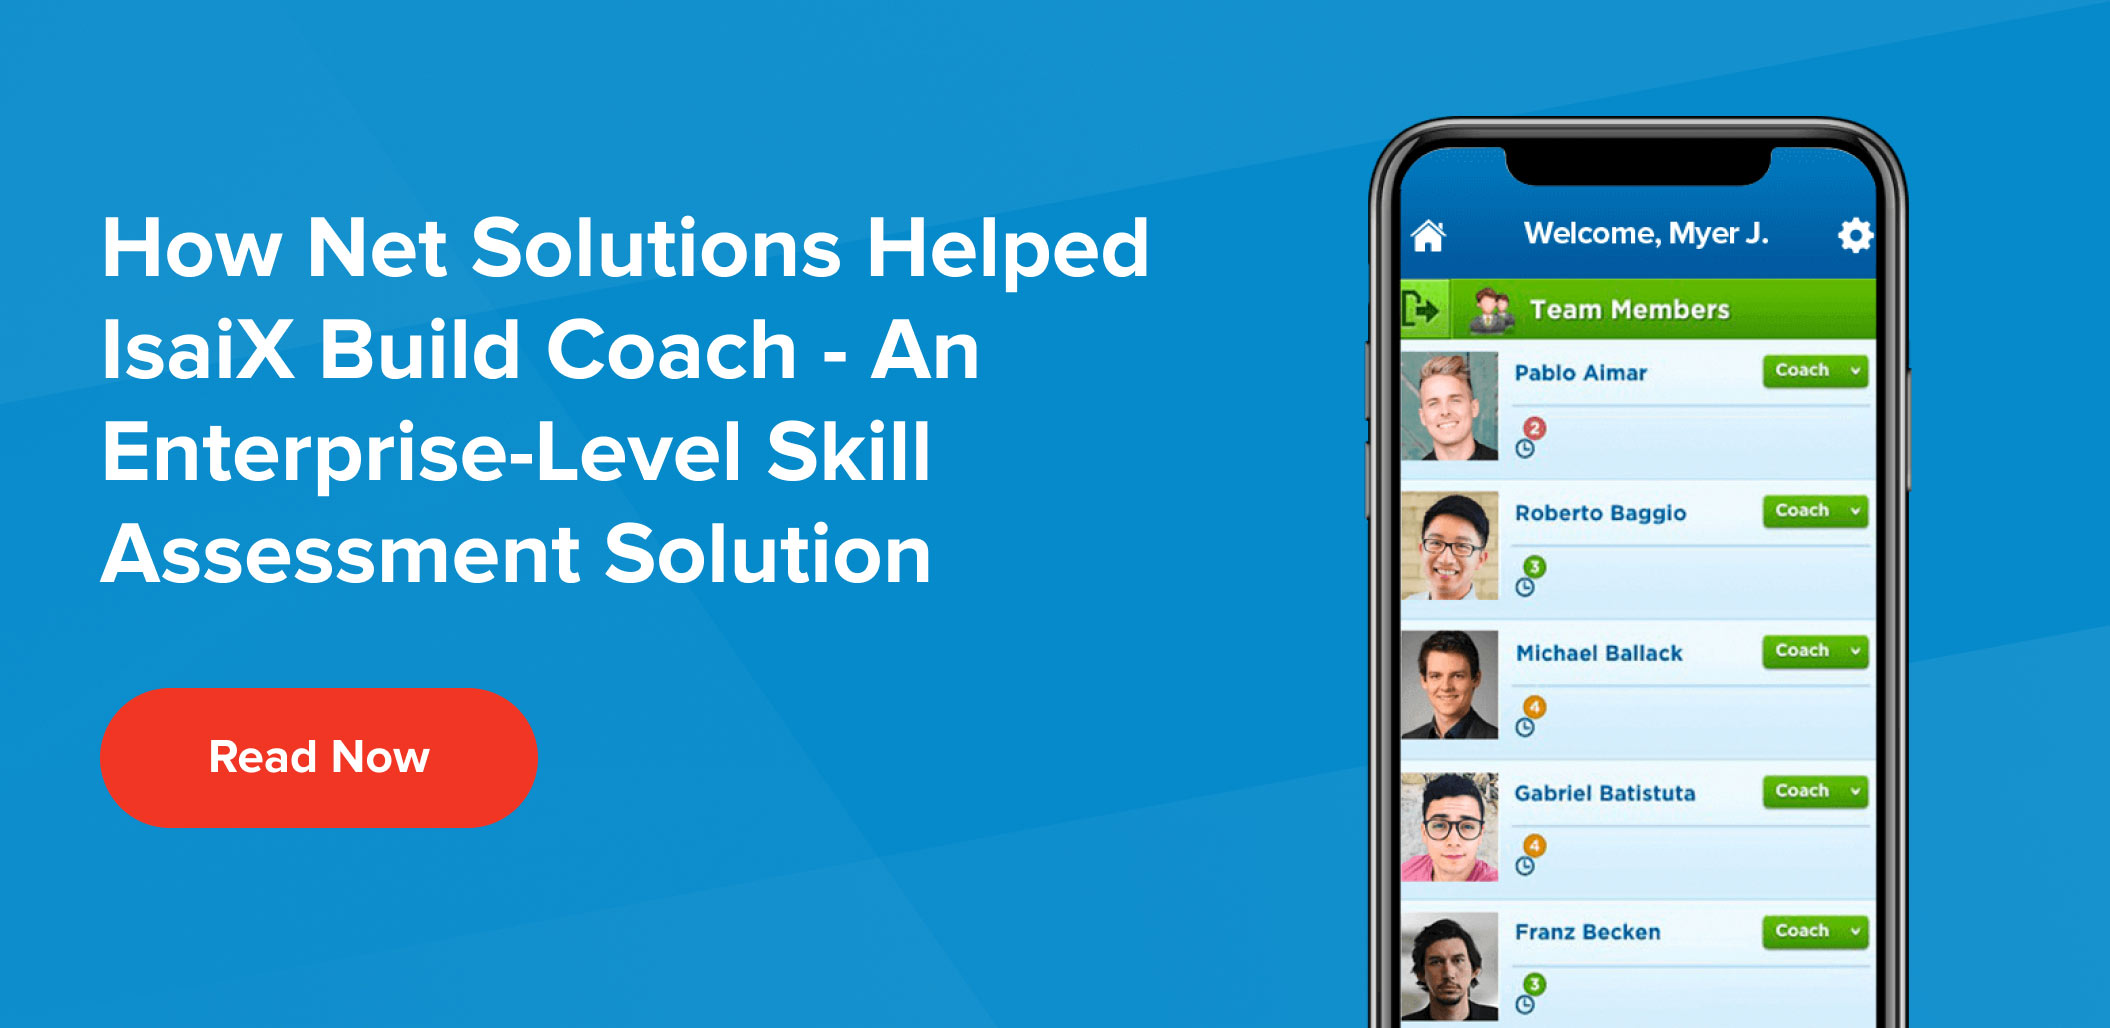 How Net Solutions helped build Coach, a skill assessment solution - Case Study